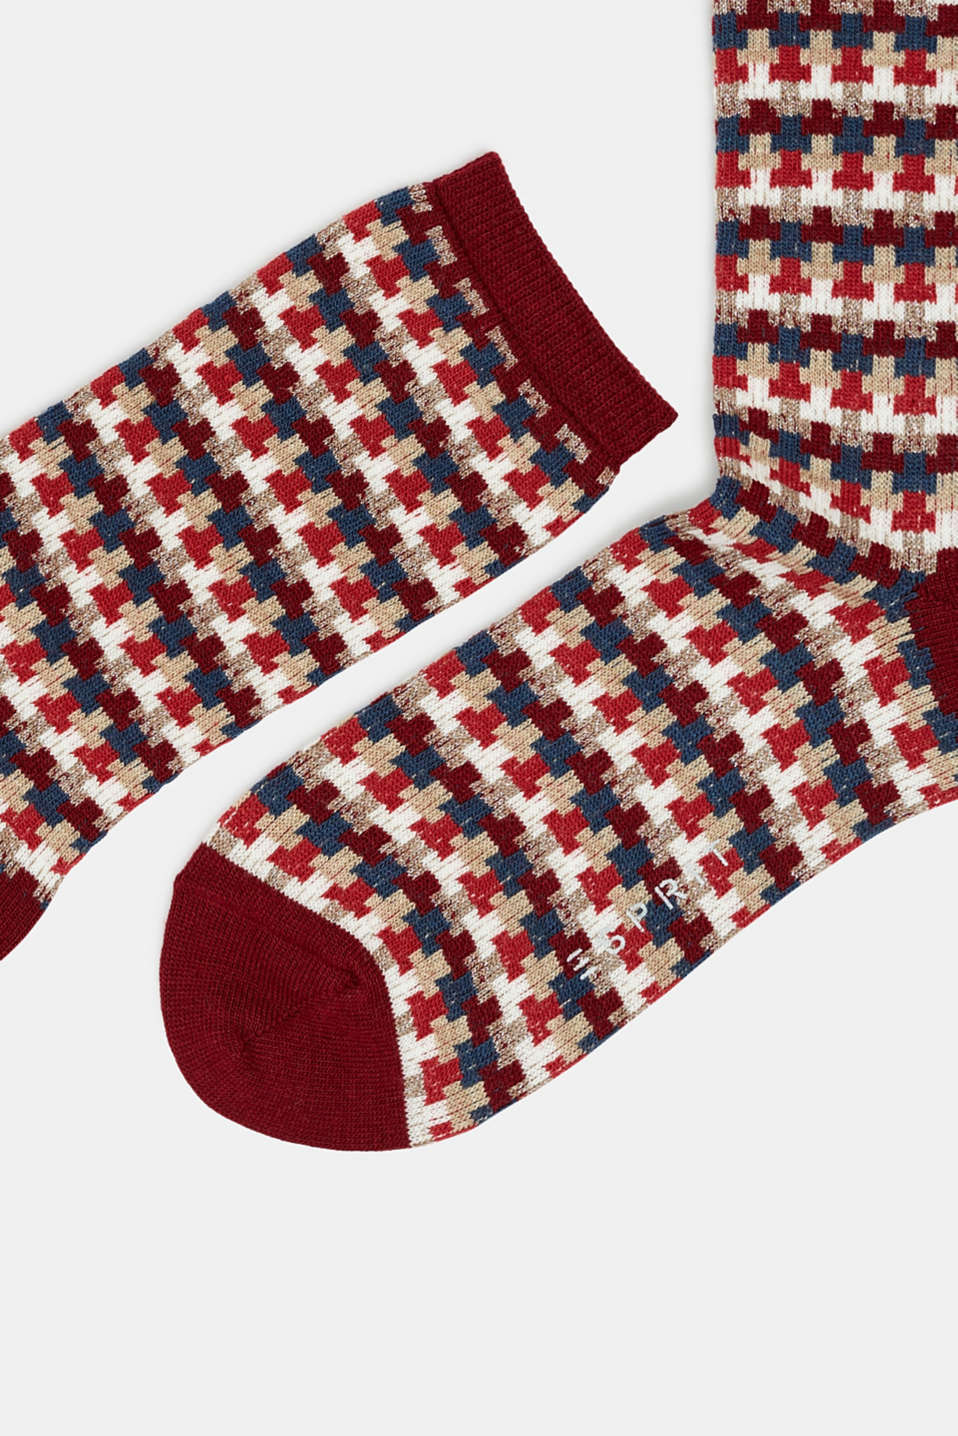 With new wool: jacquard socks with a glitter effect, MERLOT, detail image number 1